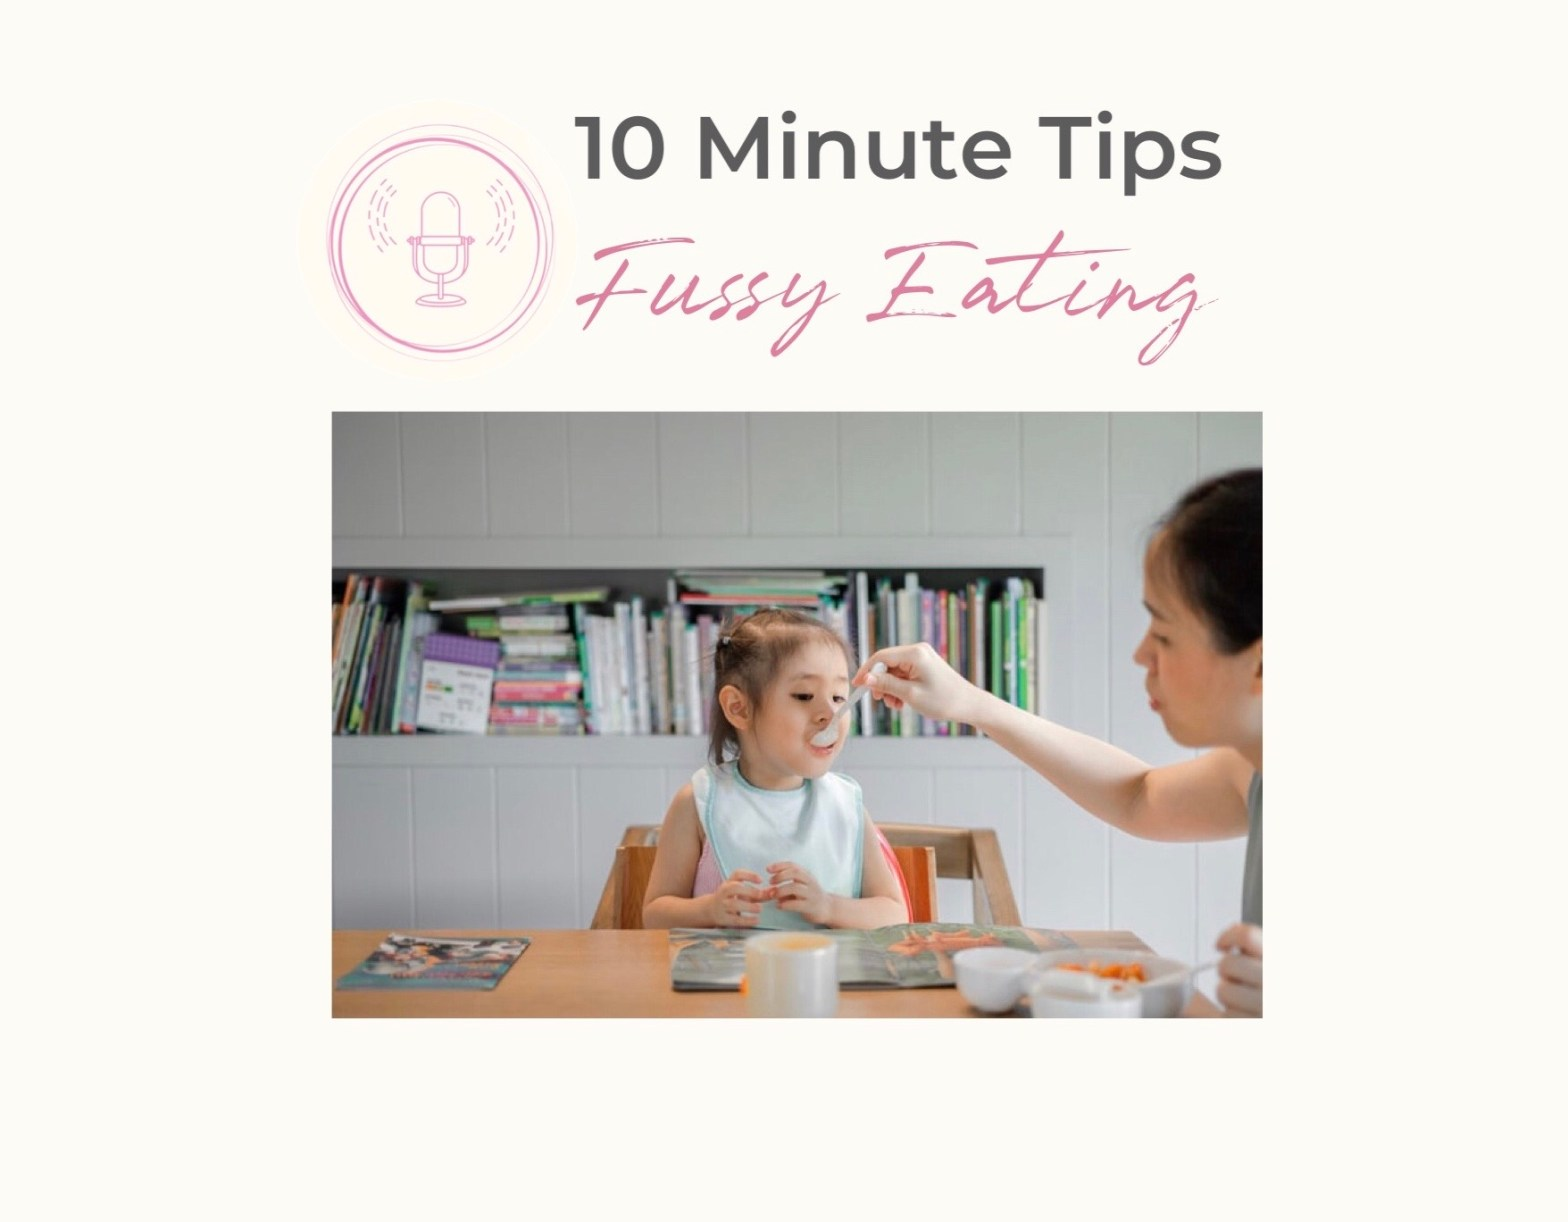 Fussy eating | Picky eaters | food anxiety in kids | fussy eater